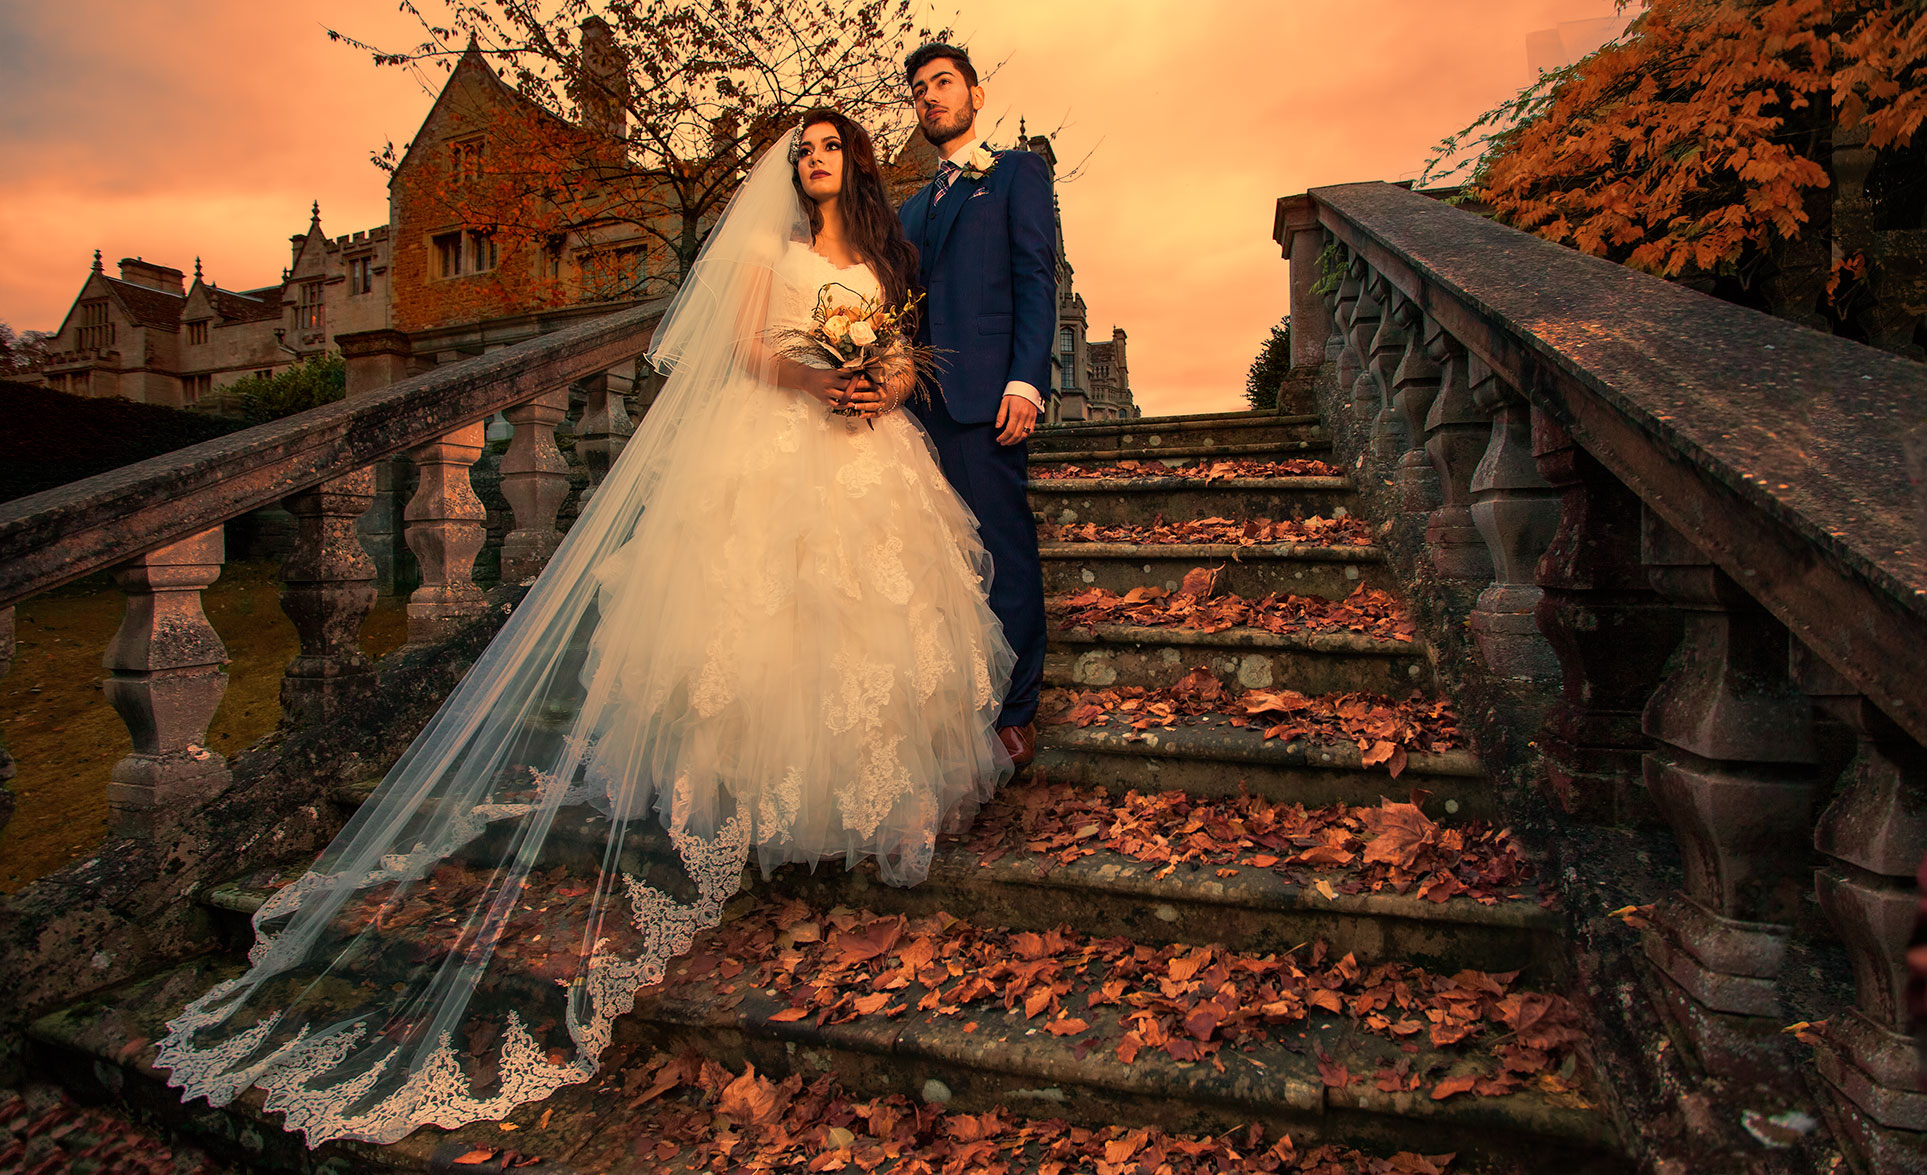 Sophia and Mehmet autunm theme